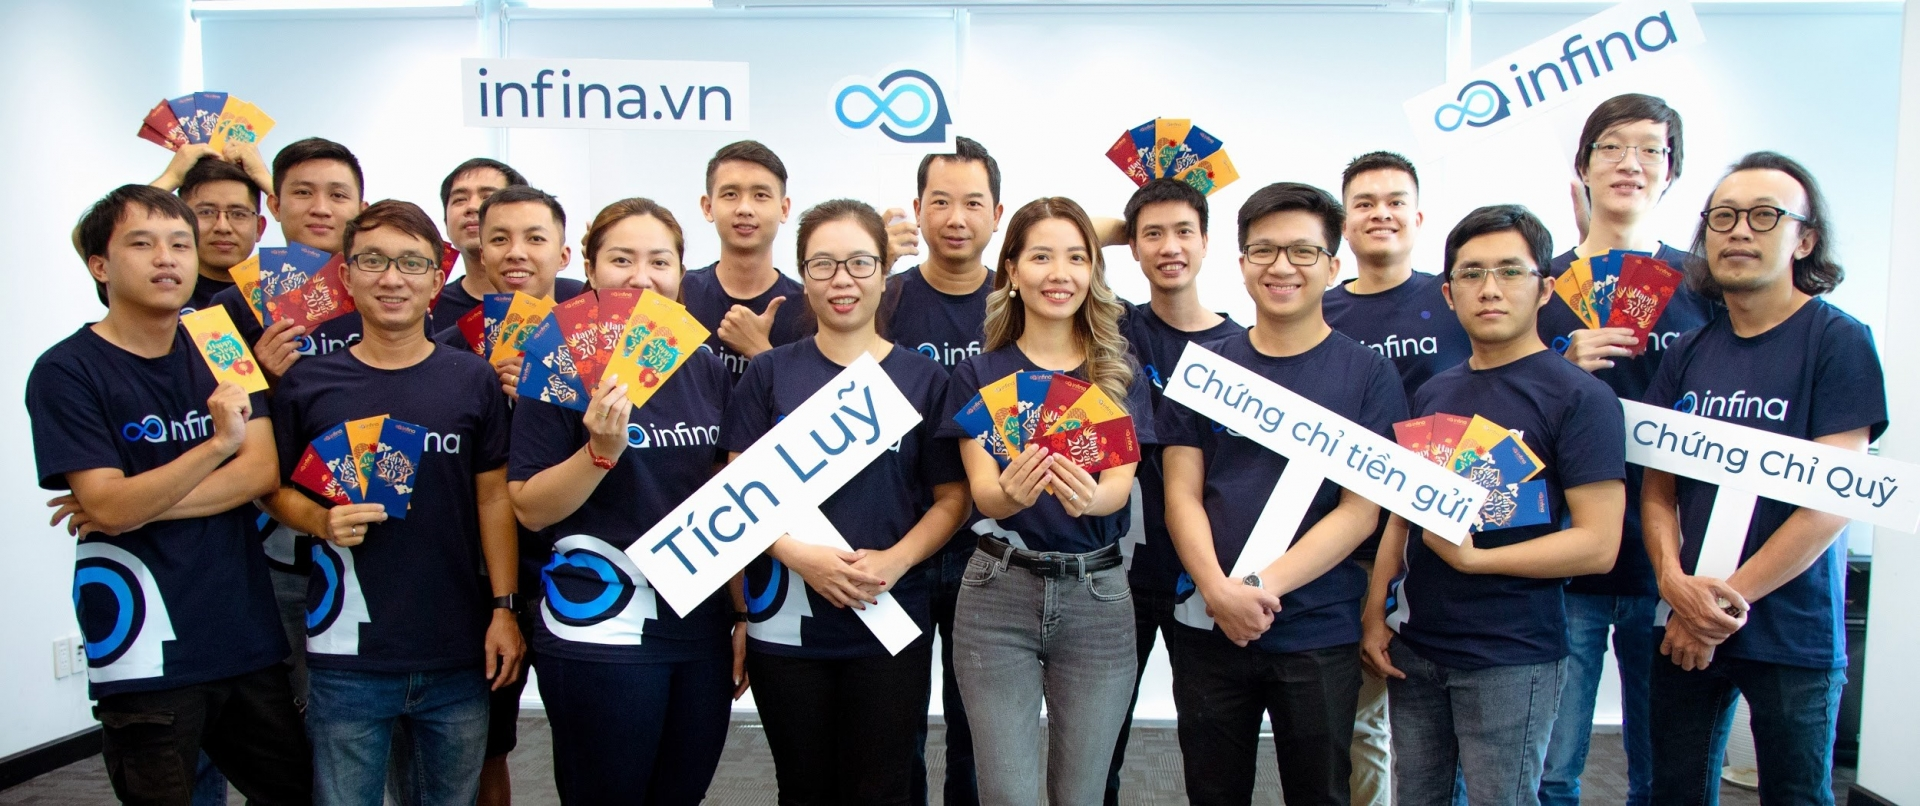 Vietnamese investment app Infina closes $2 million seed round